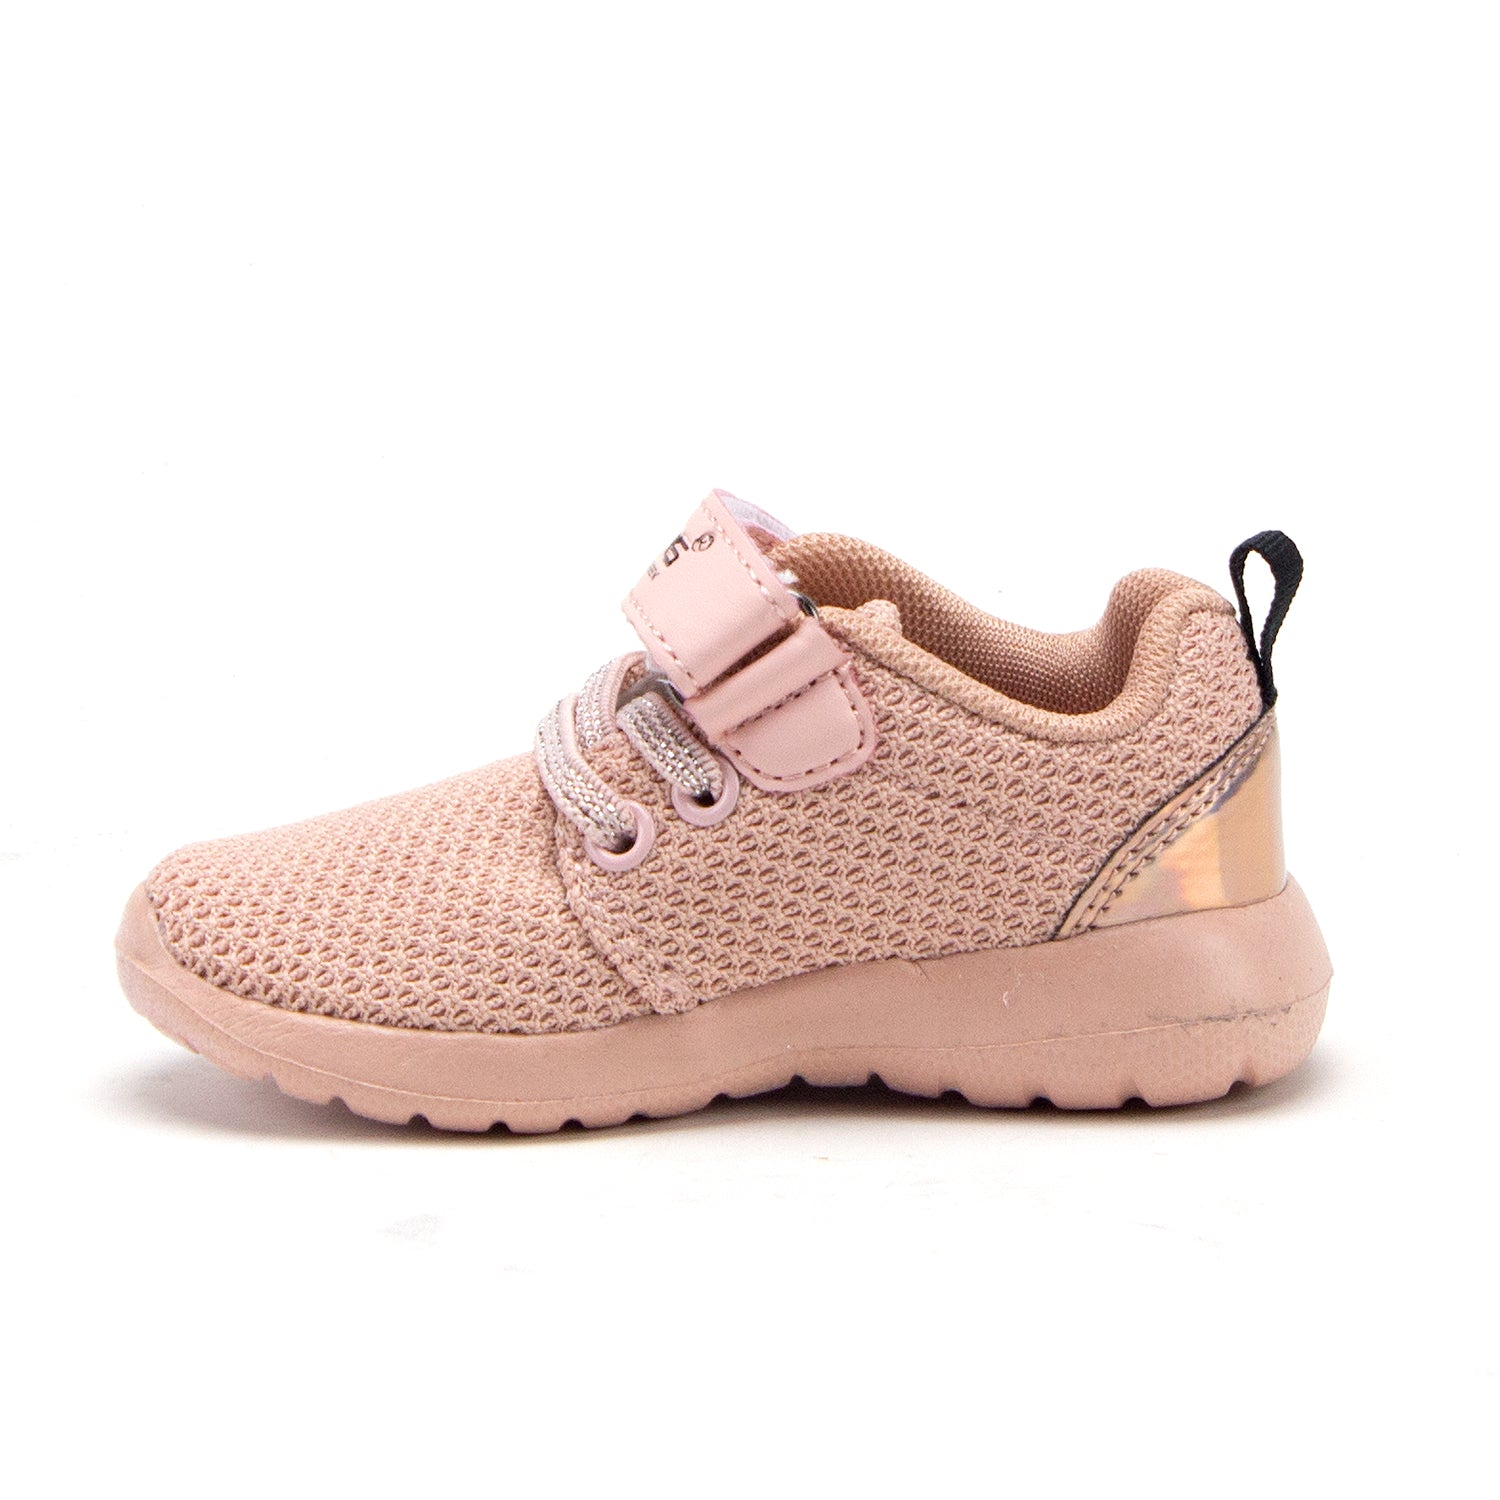 dd41fa78fdd Little Toddler Girls' Cute Slip On Sneakers Casual Sports Running Shoes